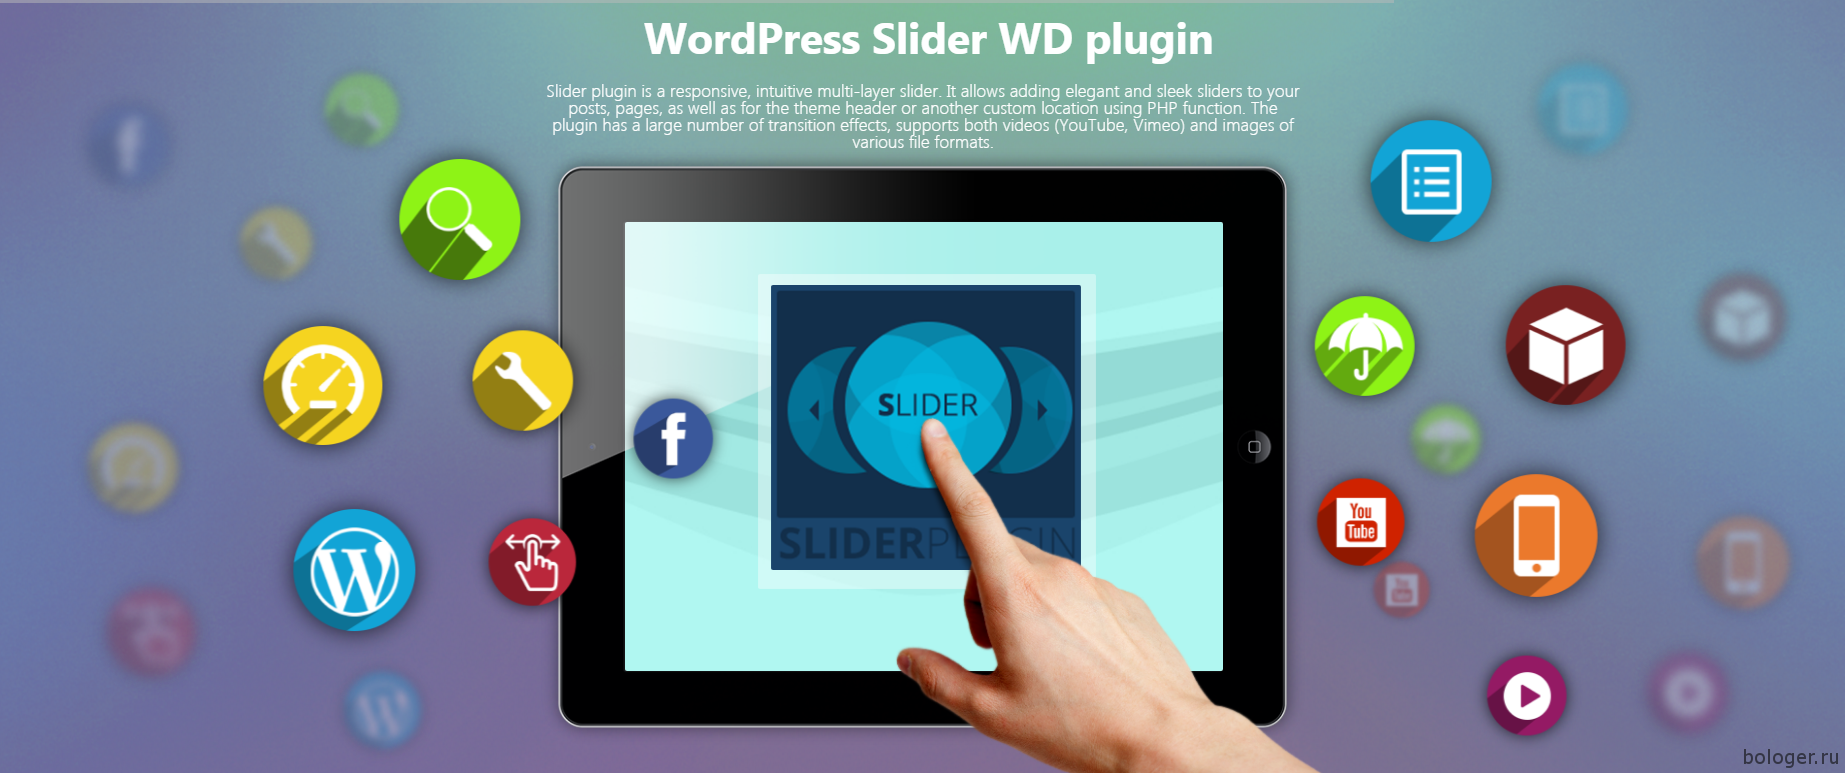 Slider WD WordPress